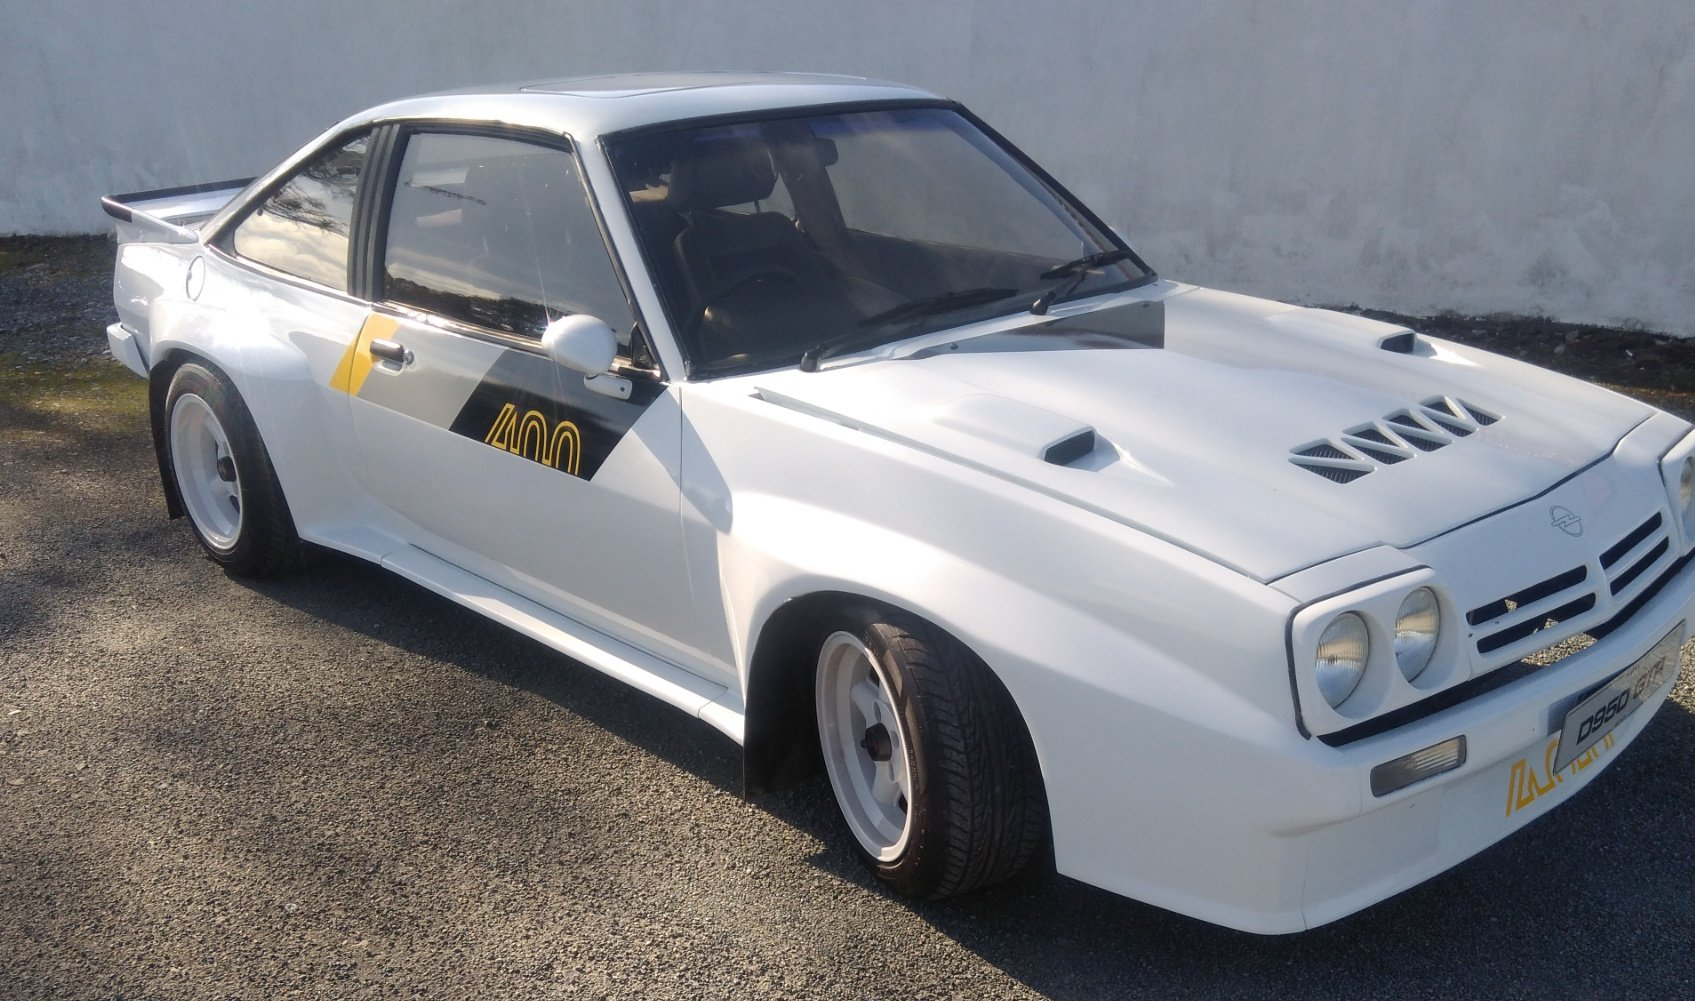 1986 Opel Manta 400r SOLD (picture 1 of 6)